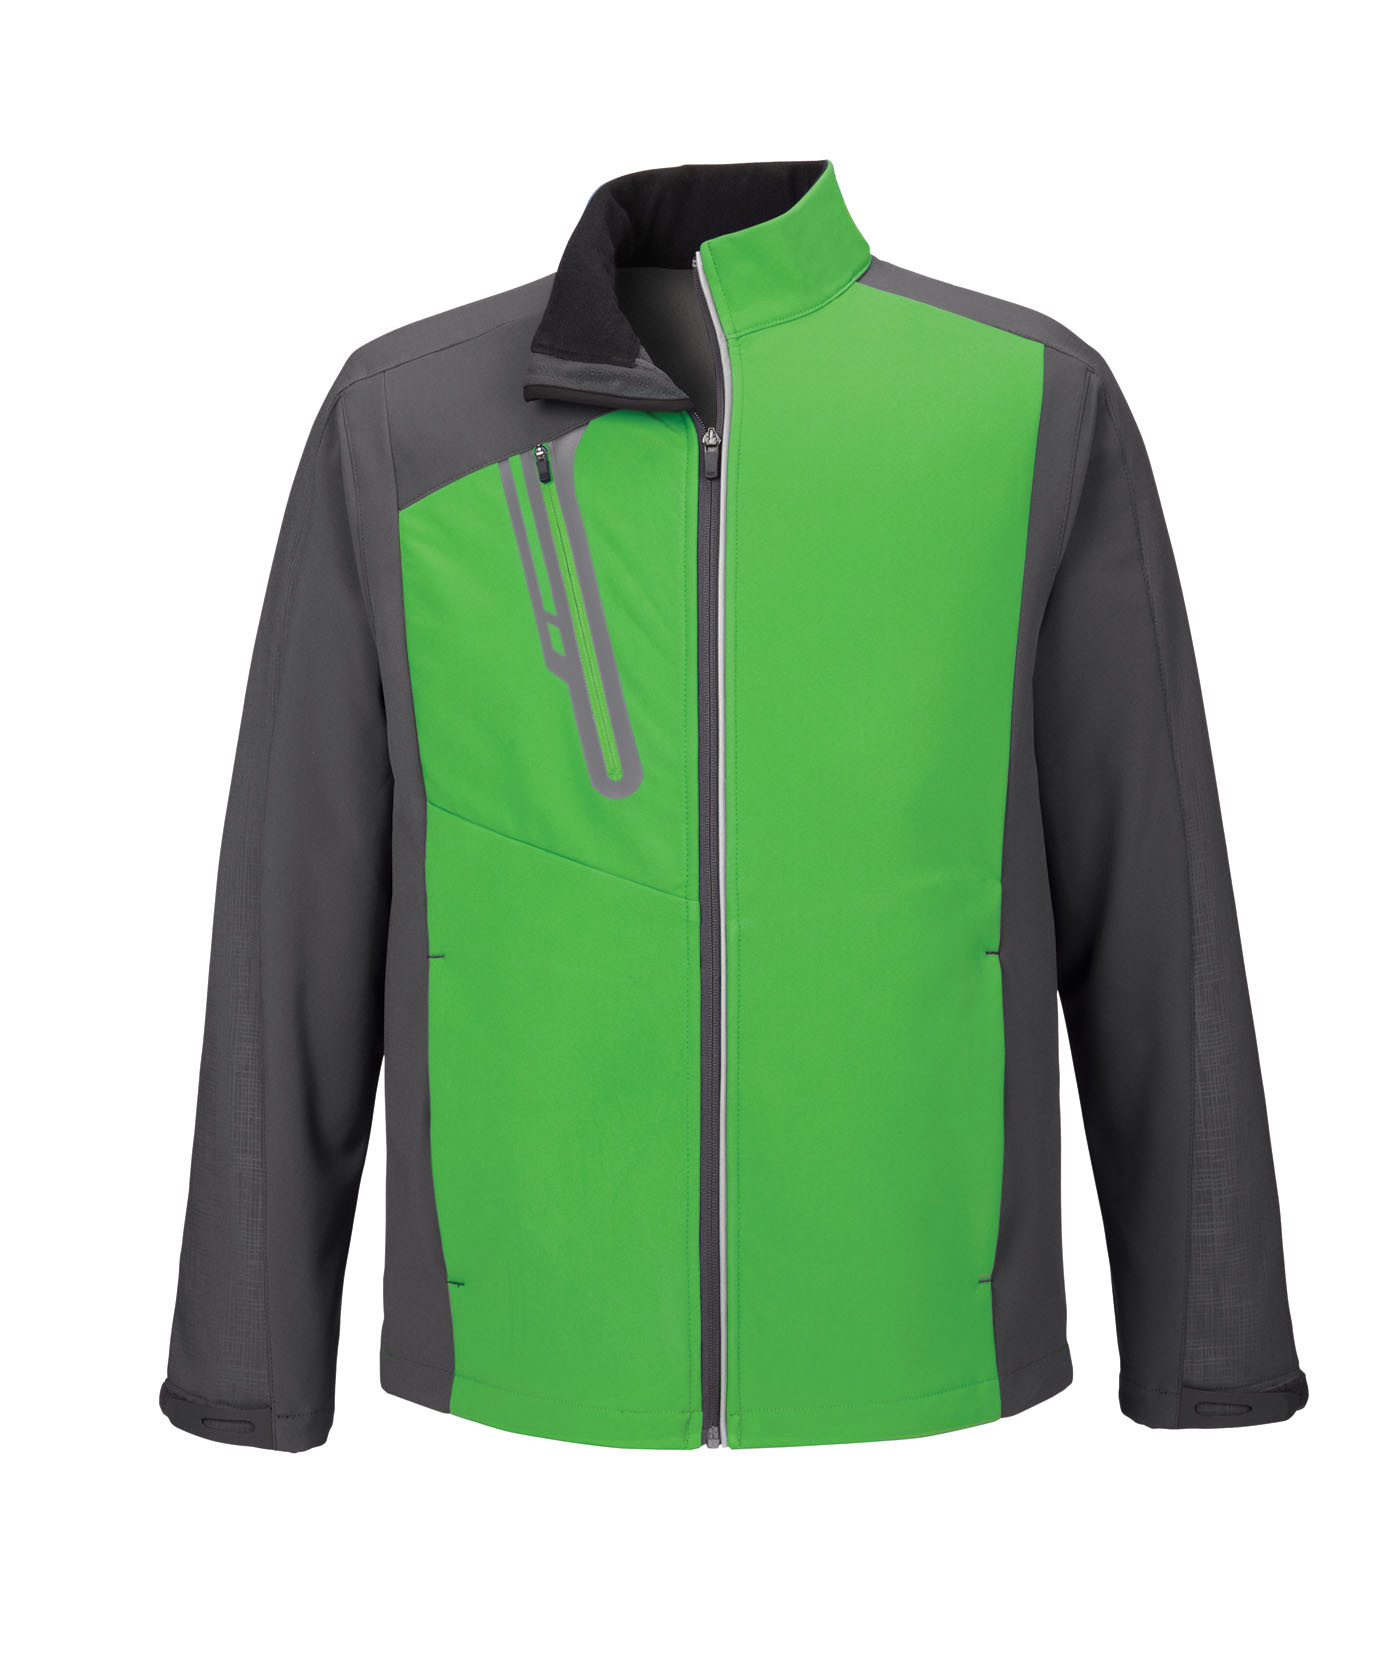 Ash City UTK 1 Warm.Logik 88176 - Terrain Men's Color-...